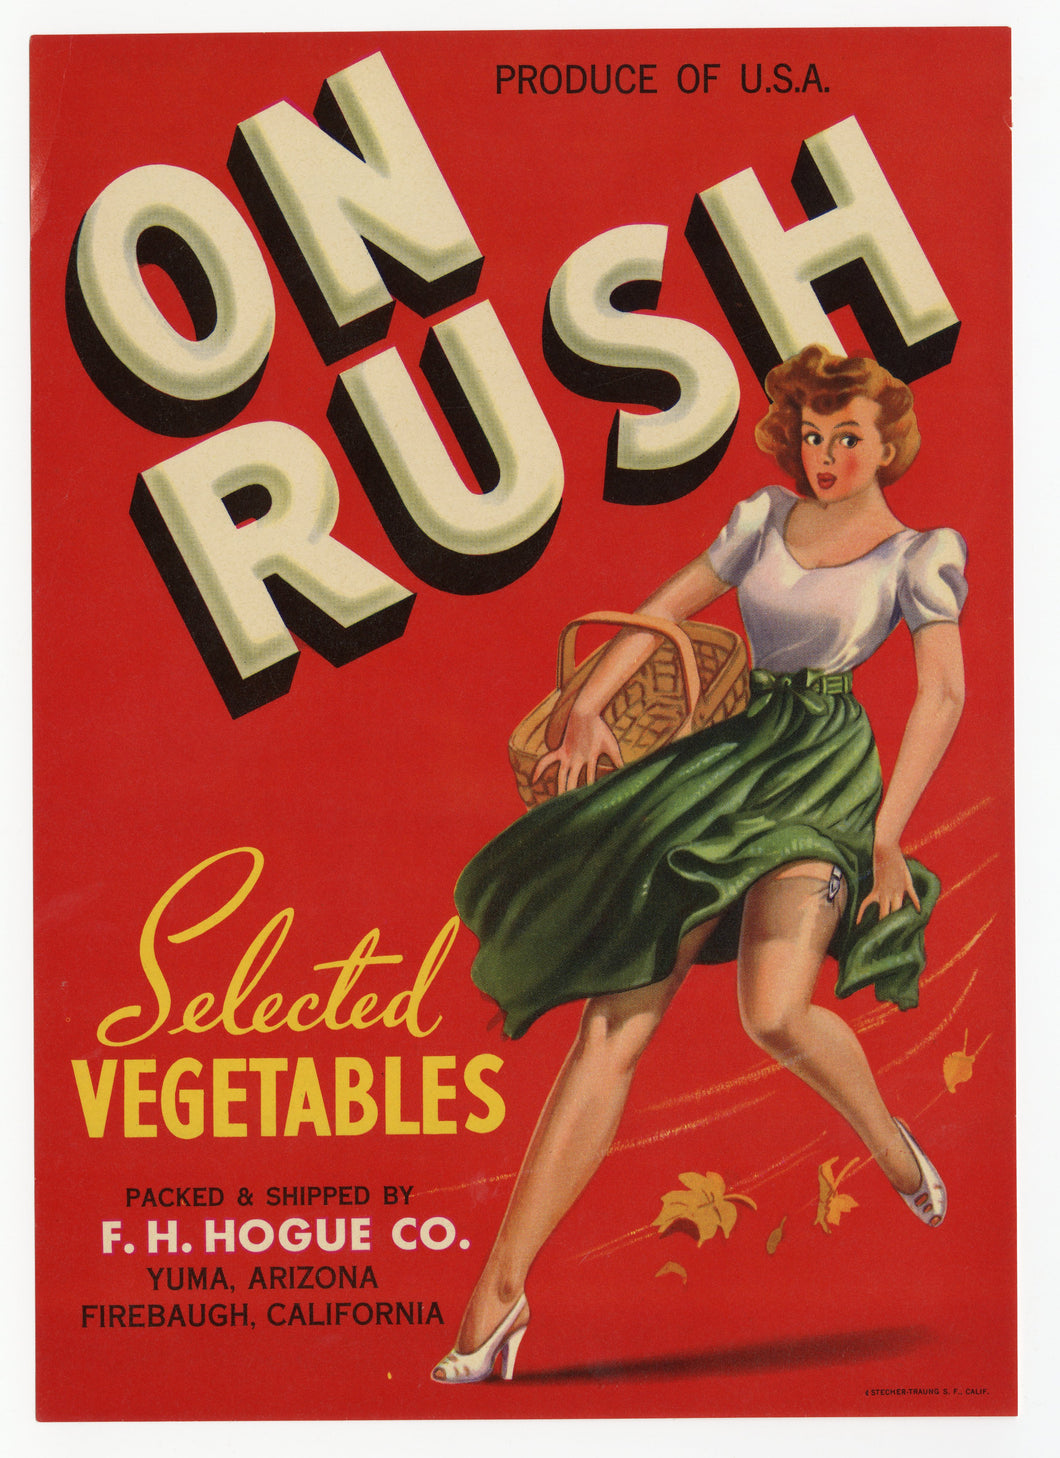 Vintage, Unused ON RUSH Vegetable Crate Label, Pinup || Yuma, Arizona